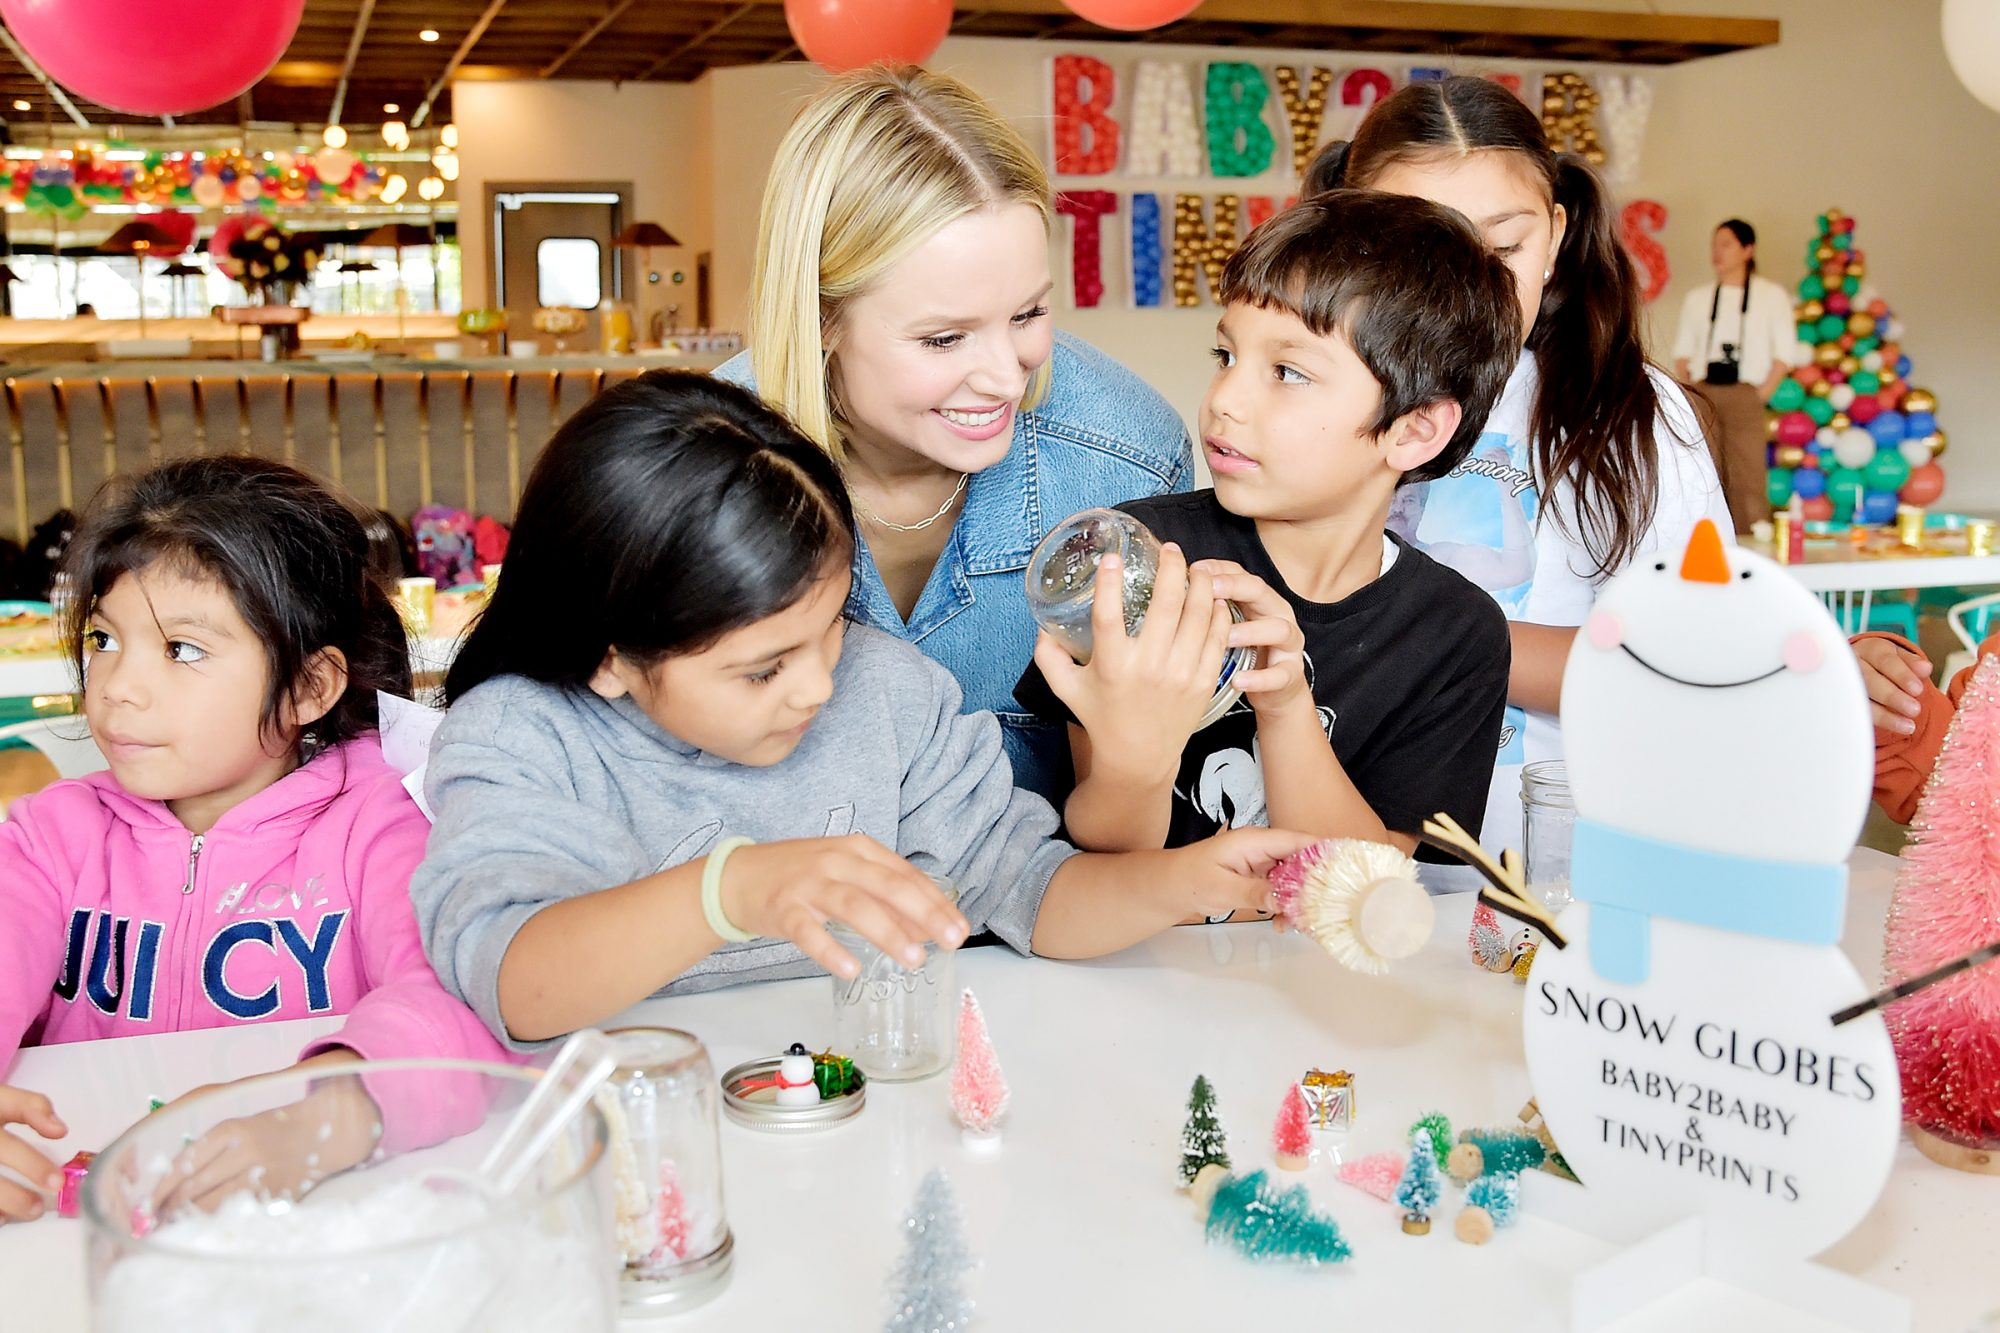 Kristen Bell Hosts The Baby2Baby And Tiny Prints Winter Wonderland at Casita Hollywood on December 05, 2019 in Los Angeles, California